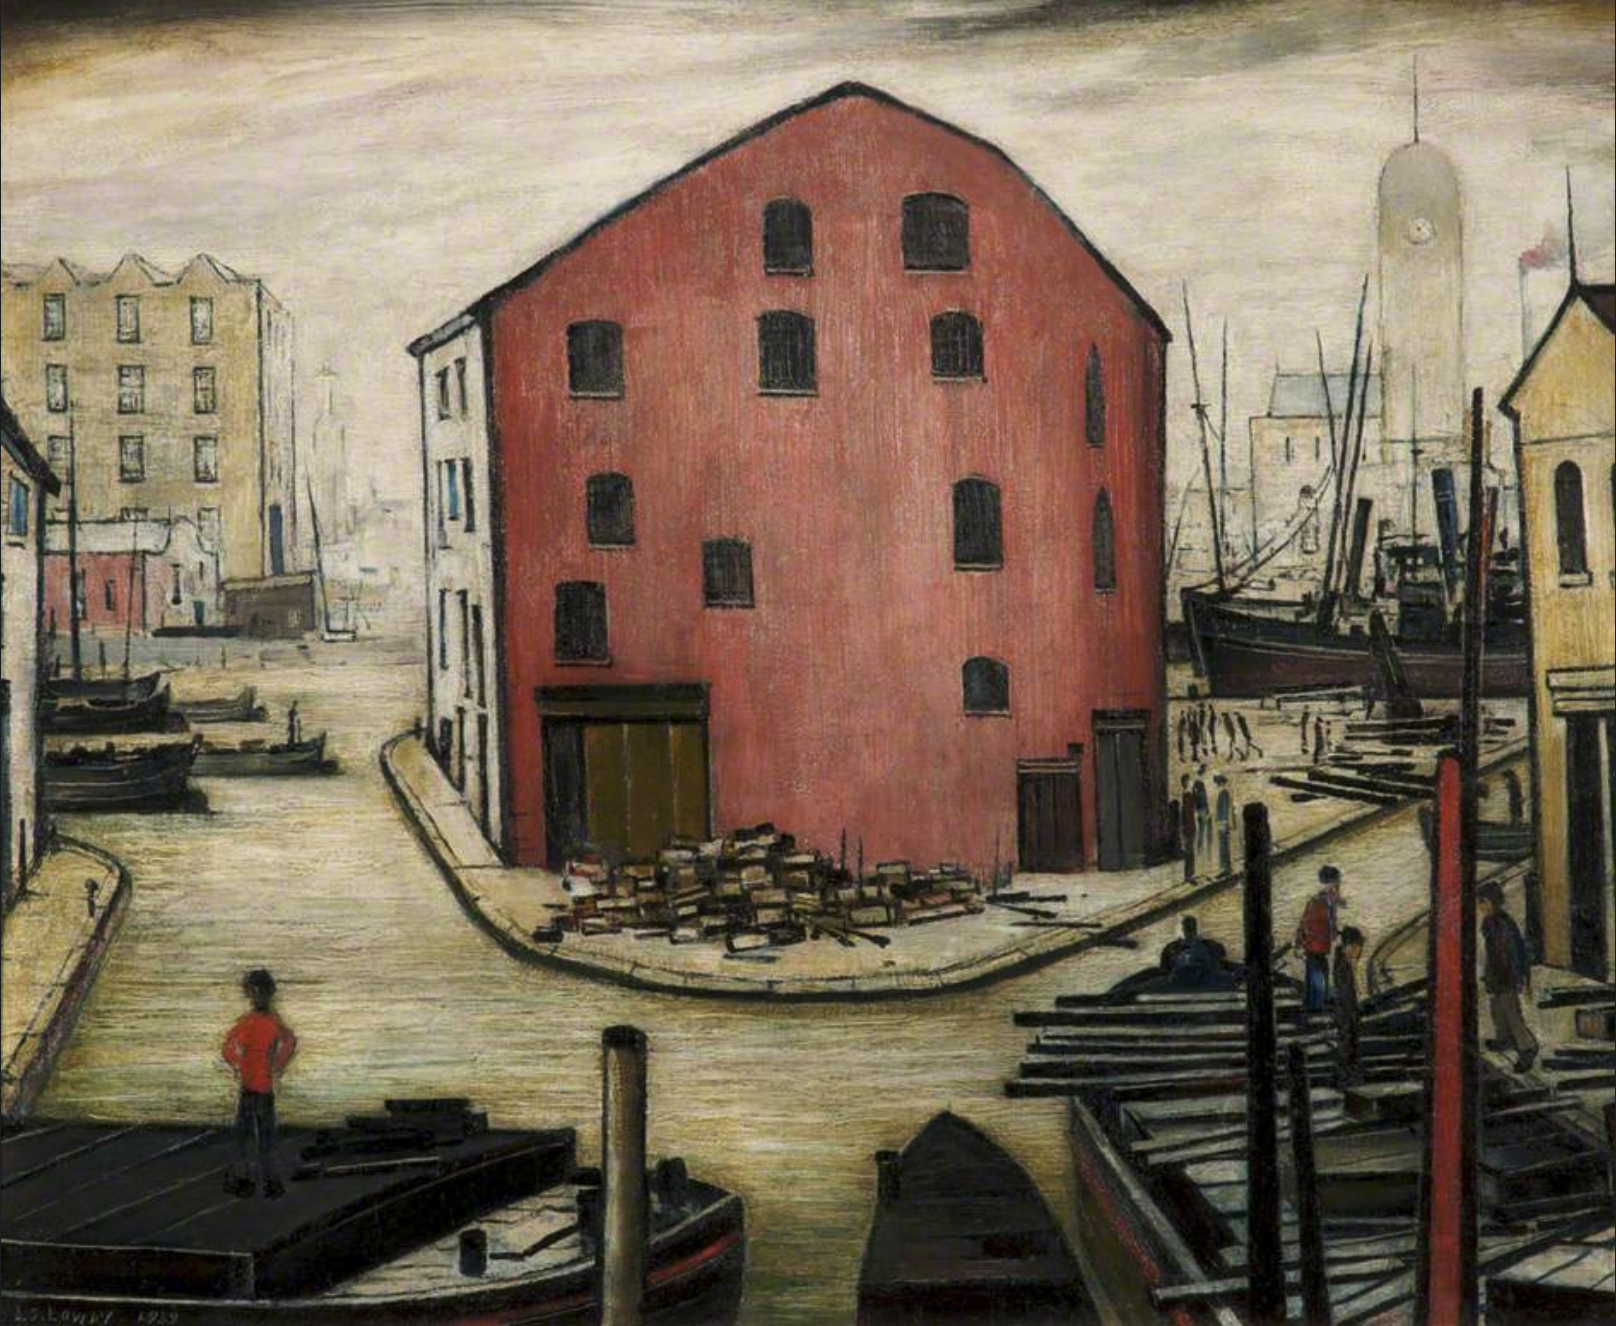 Canal Scene near Accrington (1939) by Laurence Stephen Lowry (1887 - 1976), English artist.